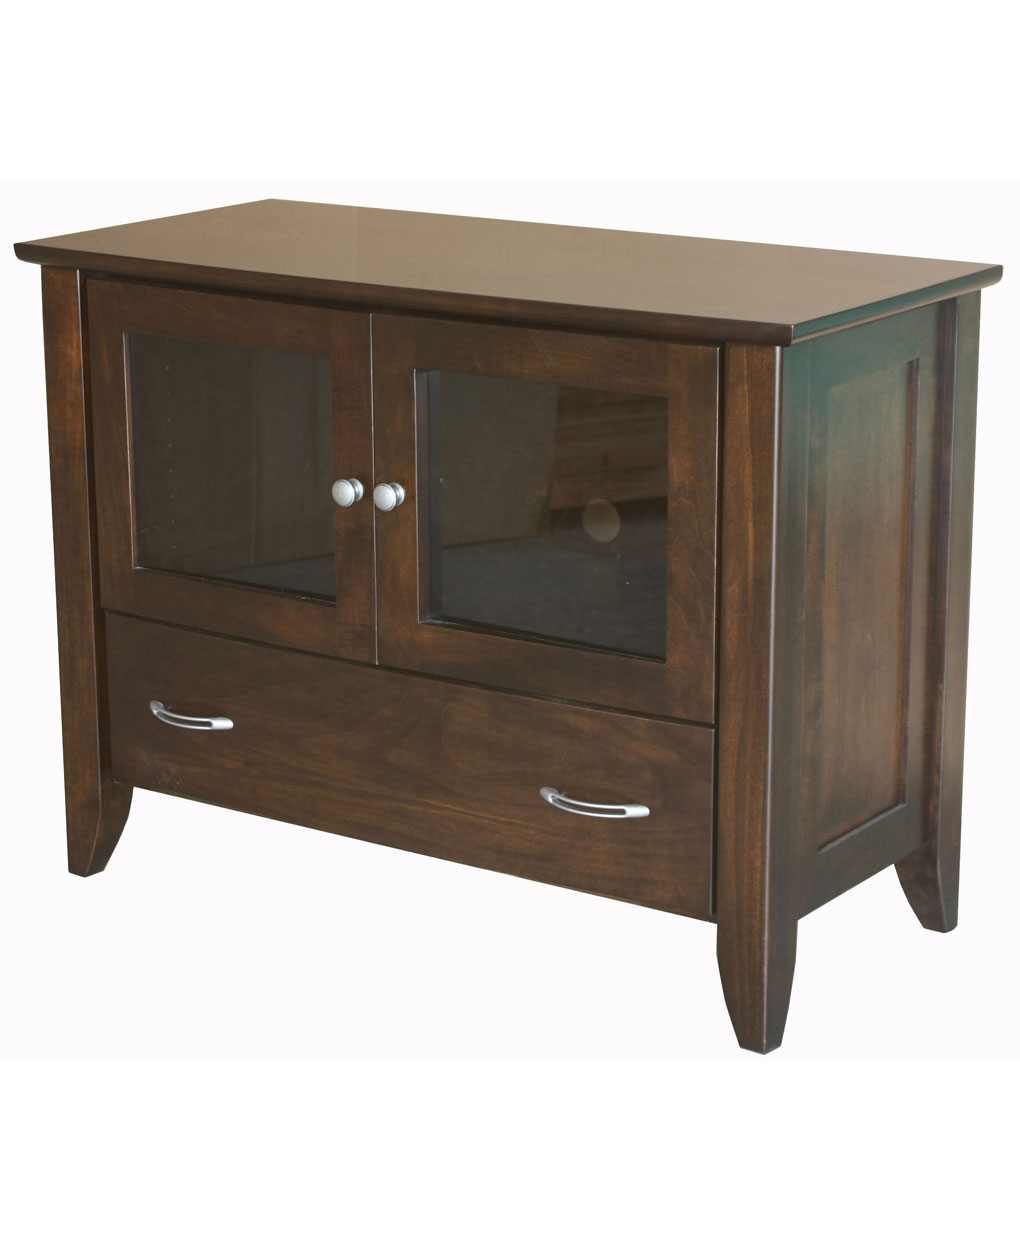 Jaymont plasma stand amish direct furniture for Direct furniture